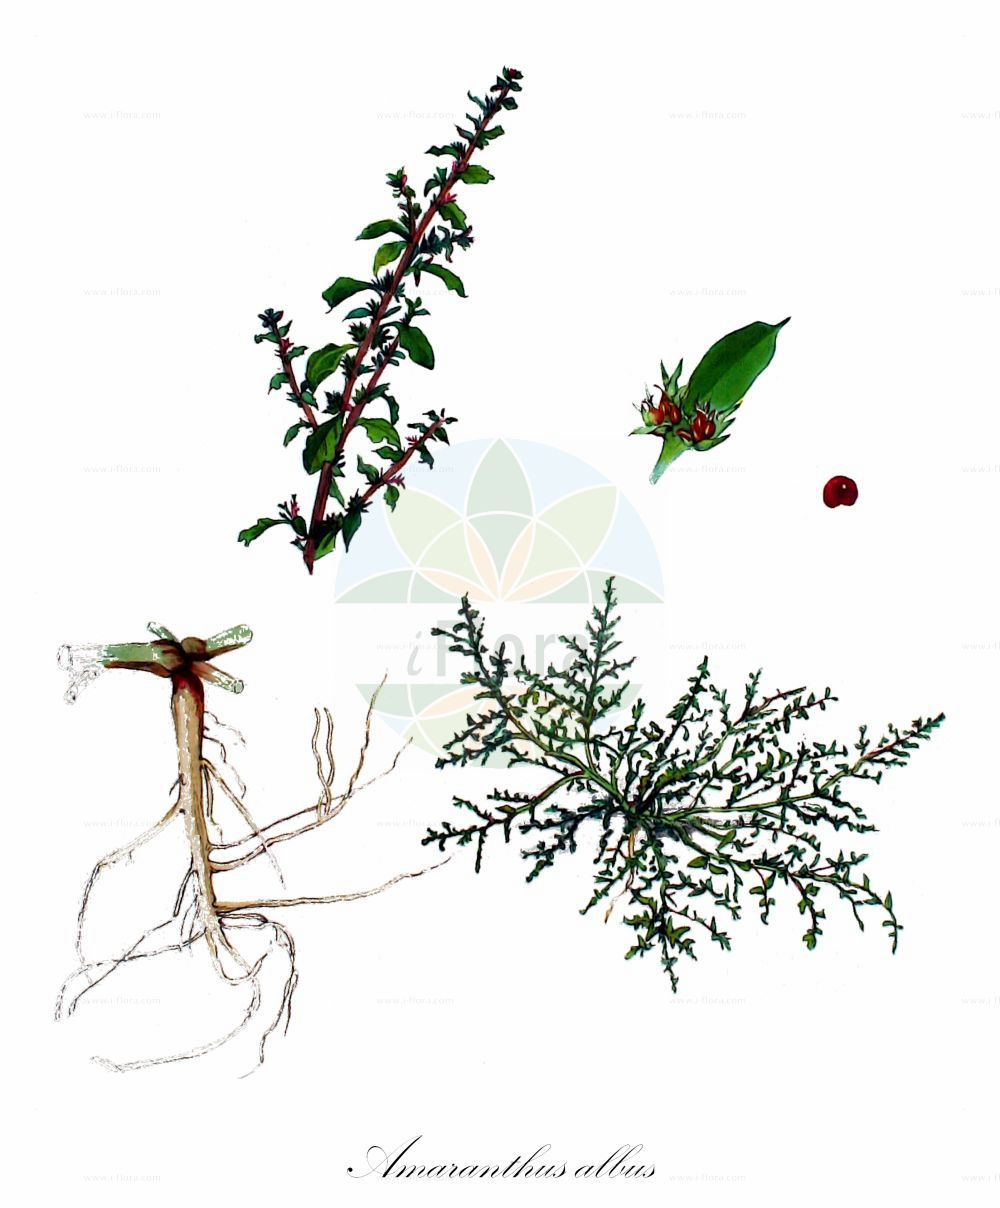 Historische Abbildung von Amaranthus albus (Weisser Fuchsschwanz - White Pigweed). Das Bild zeigt Blatt, Bluete, Frucht und Same. ---- Historical Drawing of Amaranthus albus (Weisser Fuchsschwanz - White Pigweed).The image is showing leaf, flower, fruit and seed.(Amaranthus albus,Weisser Fuchsschwanz,White Pigweed,Glomeraria alba,Weisser Amarant,Prostrate Pigweed,Tumble Amaranth,Mediterranean Amaranth,Tumble Pigweed,Tumbleweed,Tumbleweed Amaranth,Amaranthus,Fuchsschwanz,Pigweed,Amaranthaceae,Fuchsschwanzgewaechse,Pigweed family,Blatt,Bluete,Frucht,Same,leaf,flower,fruit,seed,Kops (1800-1934))